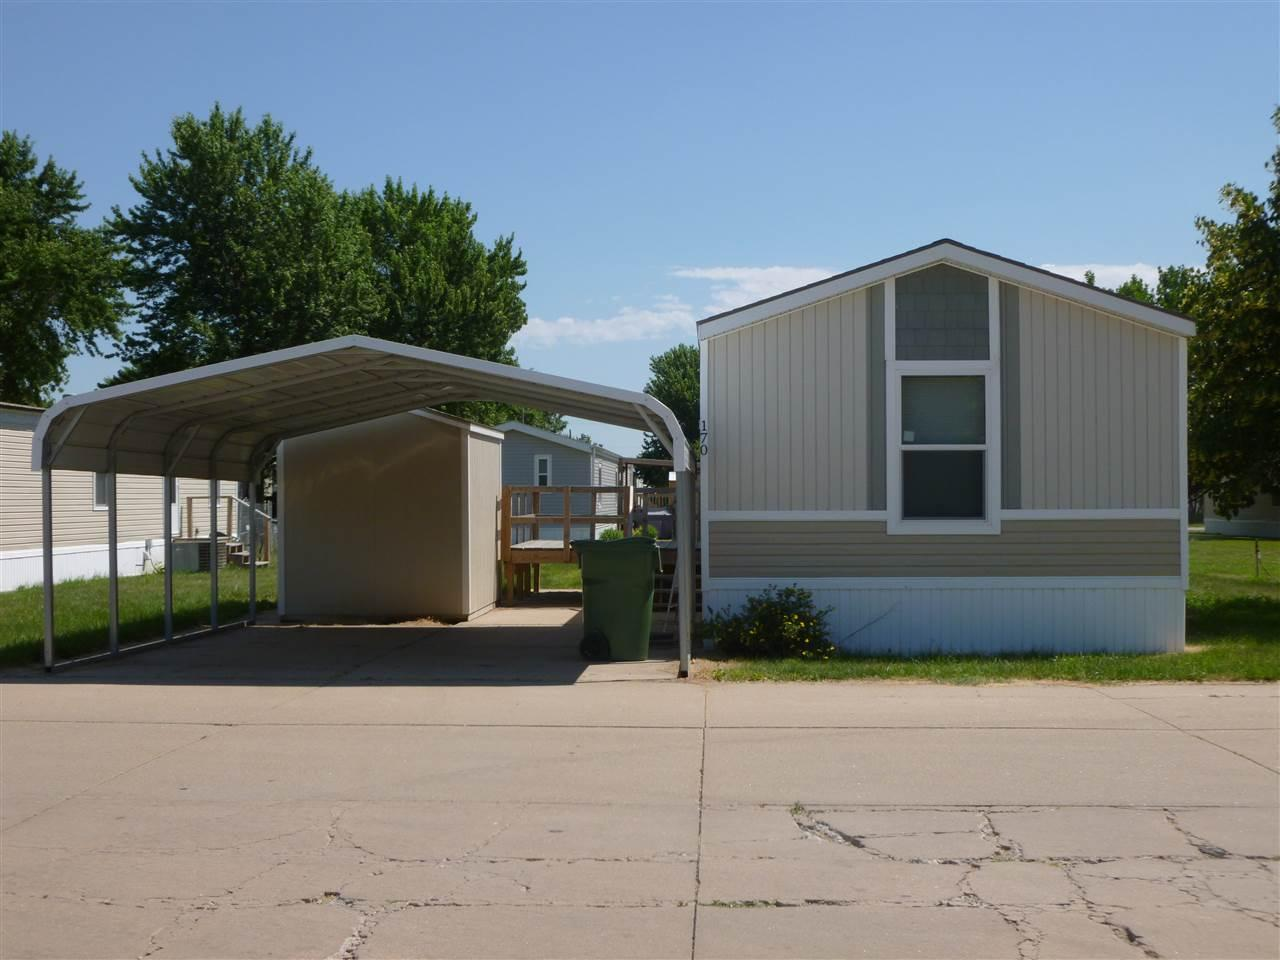 170 Valley View Mobile Homes Kearney Ne Mls 20936